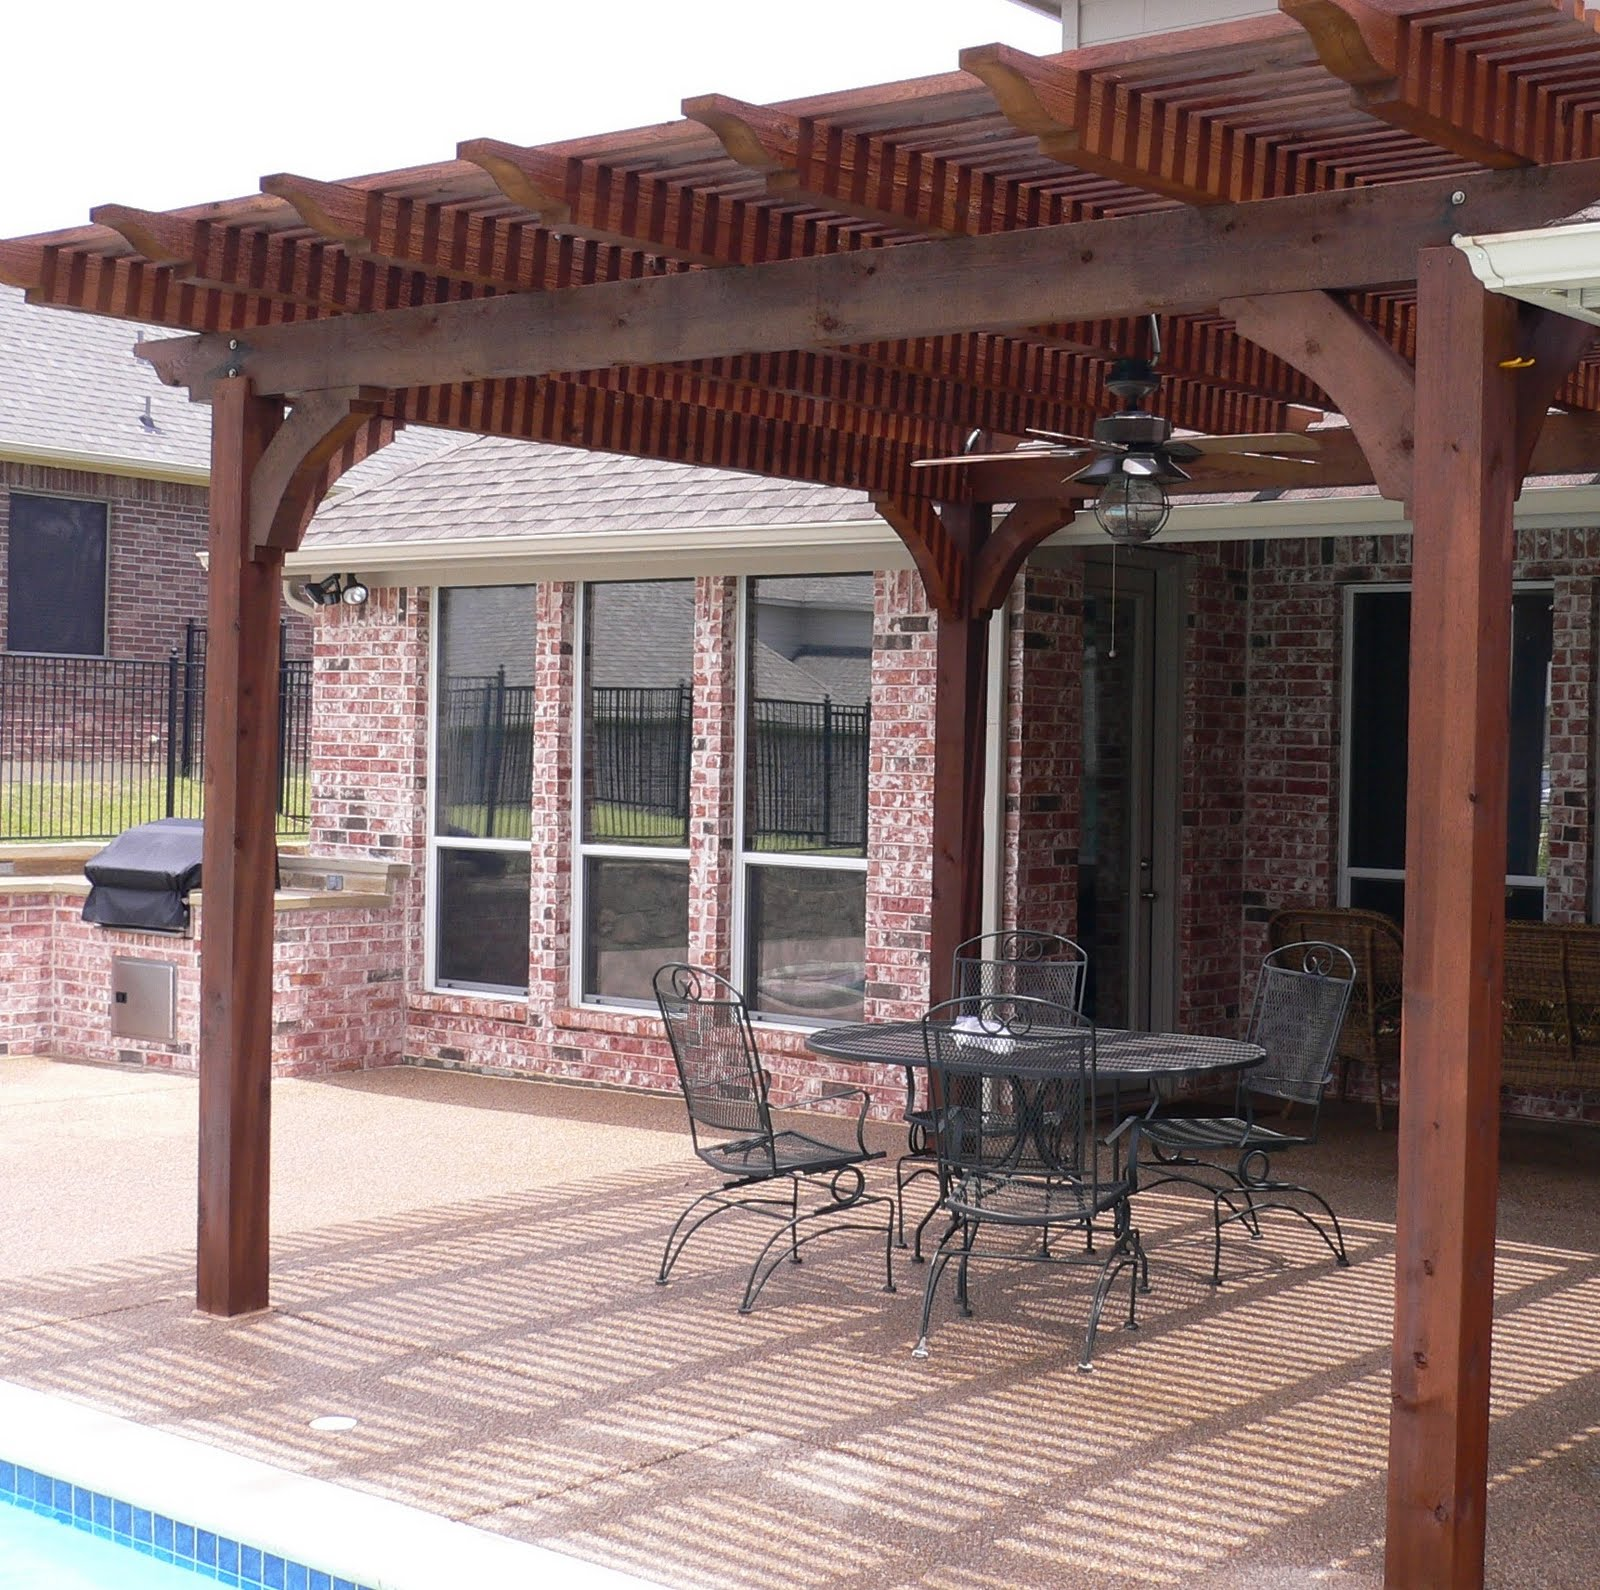 Great Roof Wood Patio Cover Design Near Swimming Pool